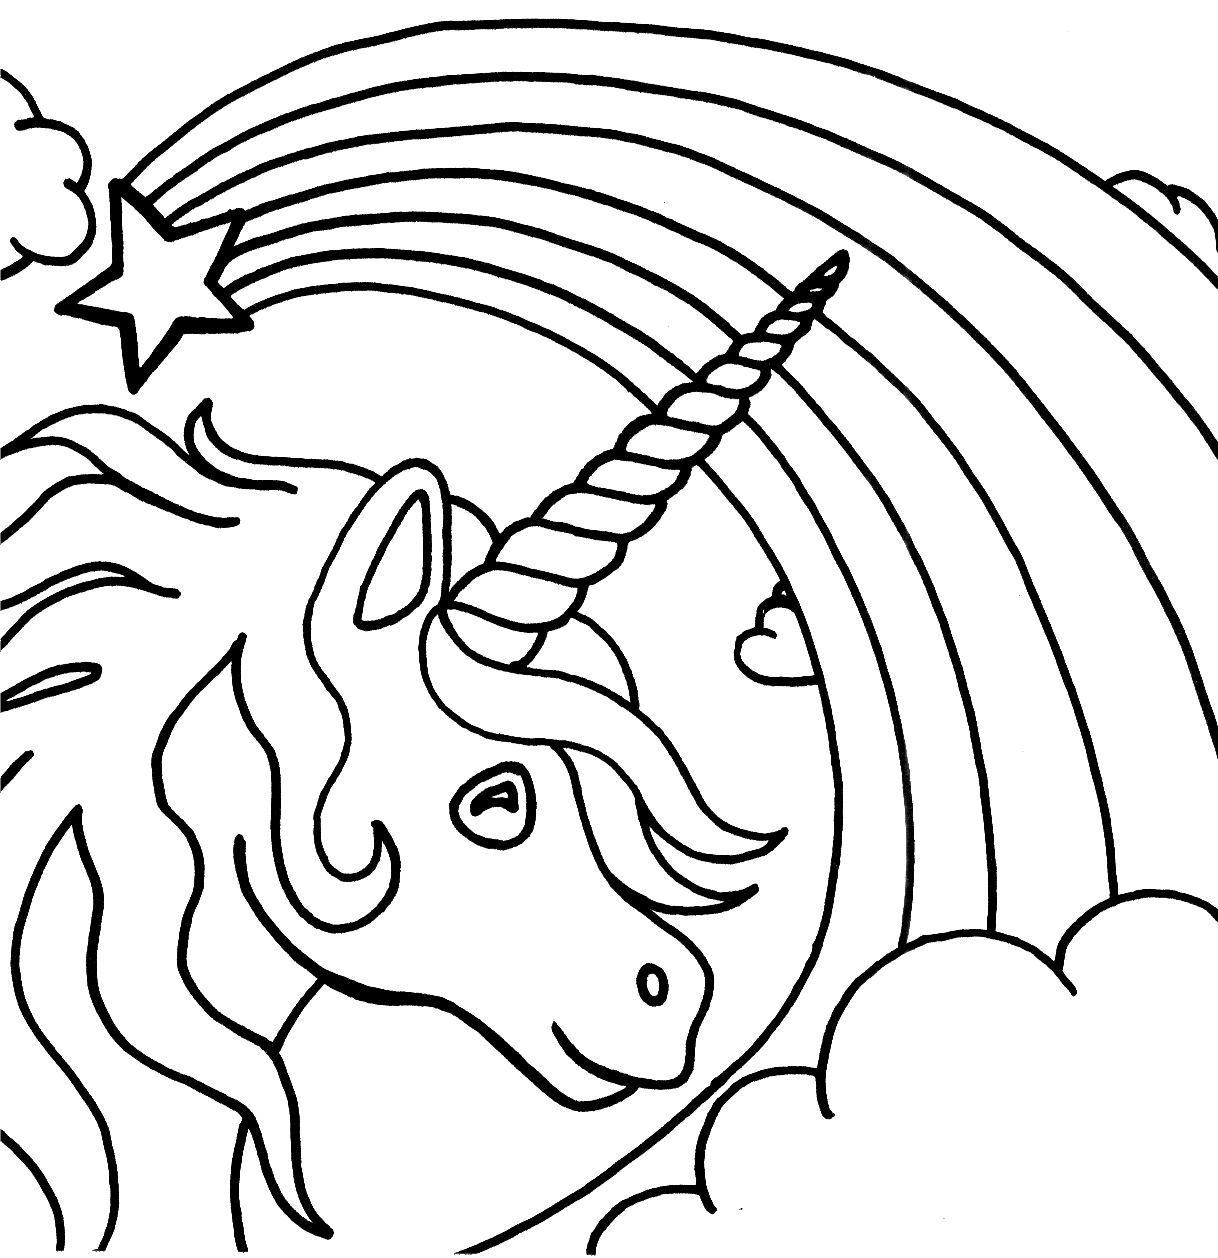 Unicorn Coloring Pages Crayola Coloring Pages Allow Kids To Accompany Th Kids Printable Coloring Pages Free Printable Coloring Sheets Unicorn Coloring Pages